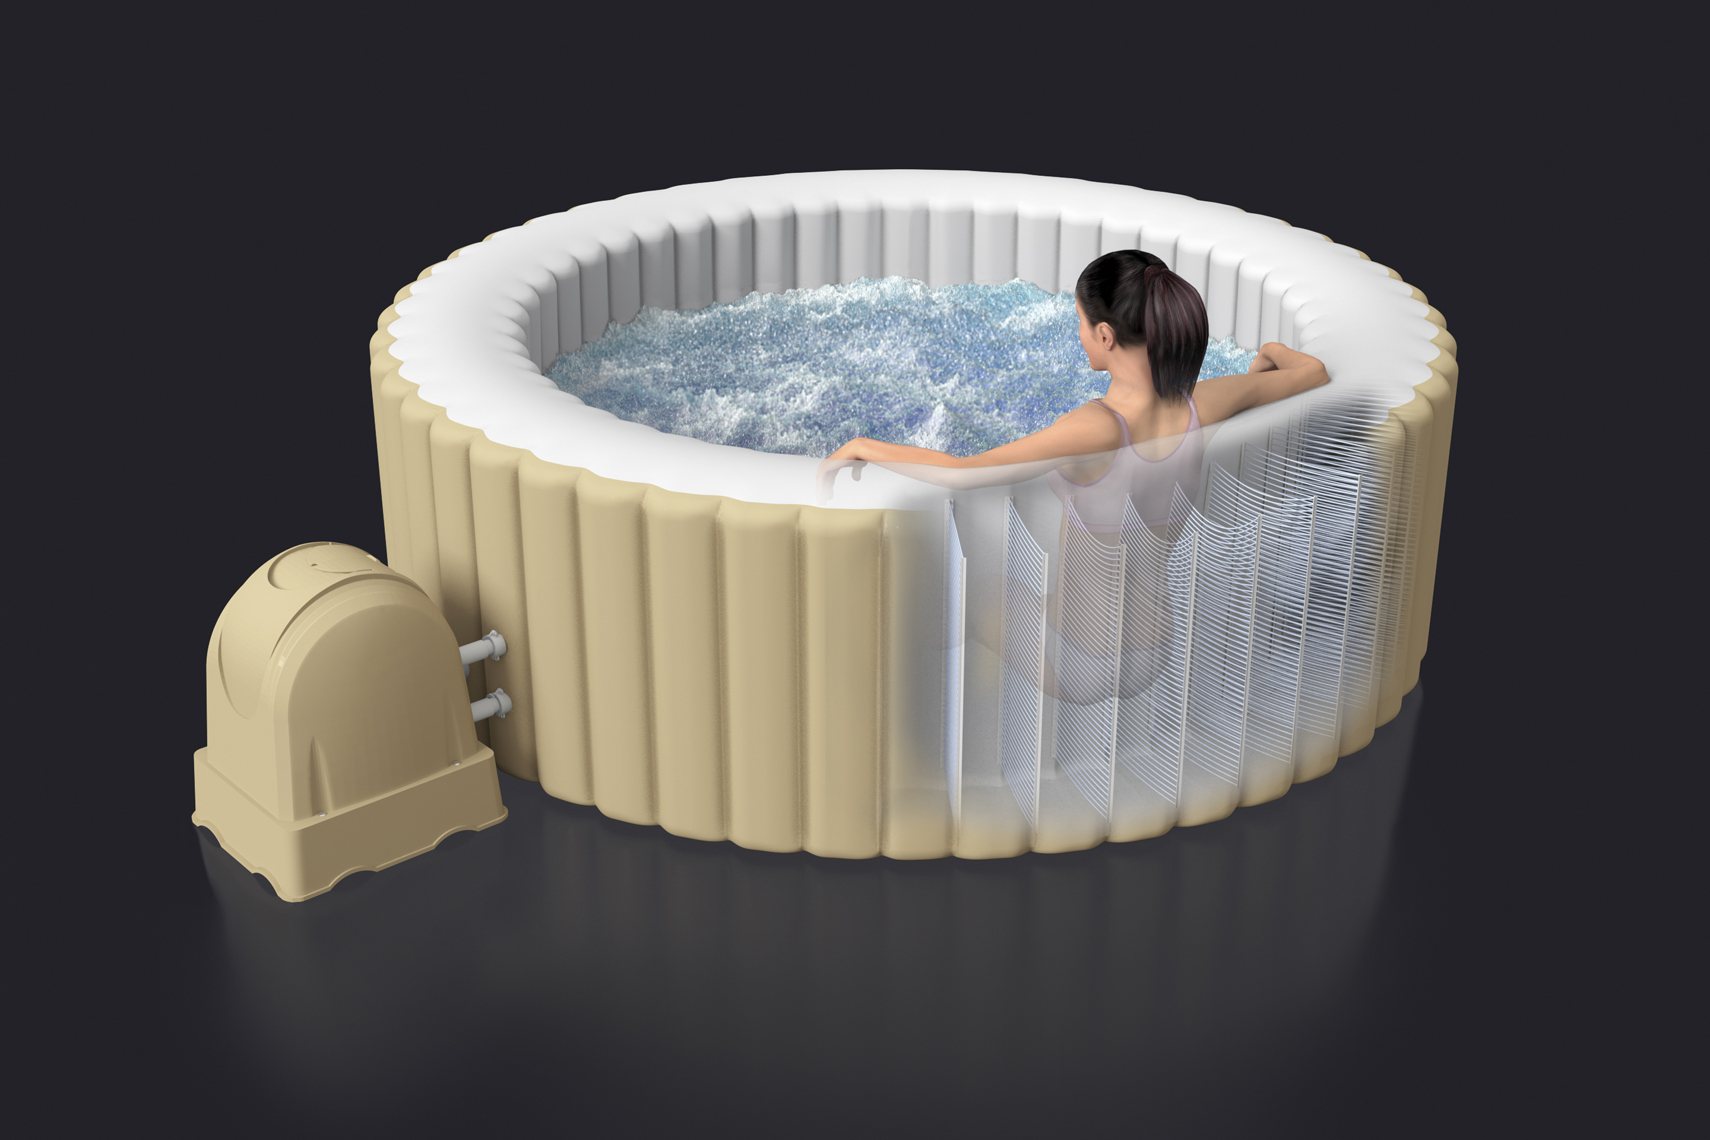 Intex Inflatable Spa Illustration